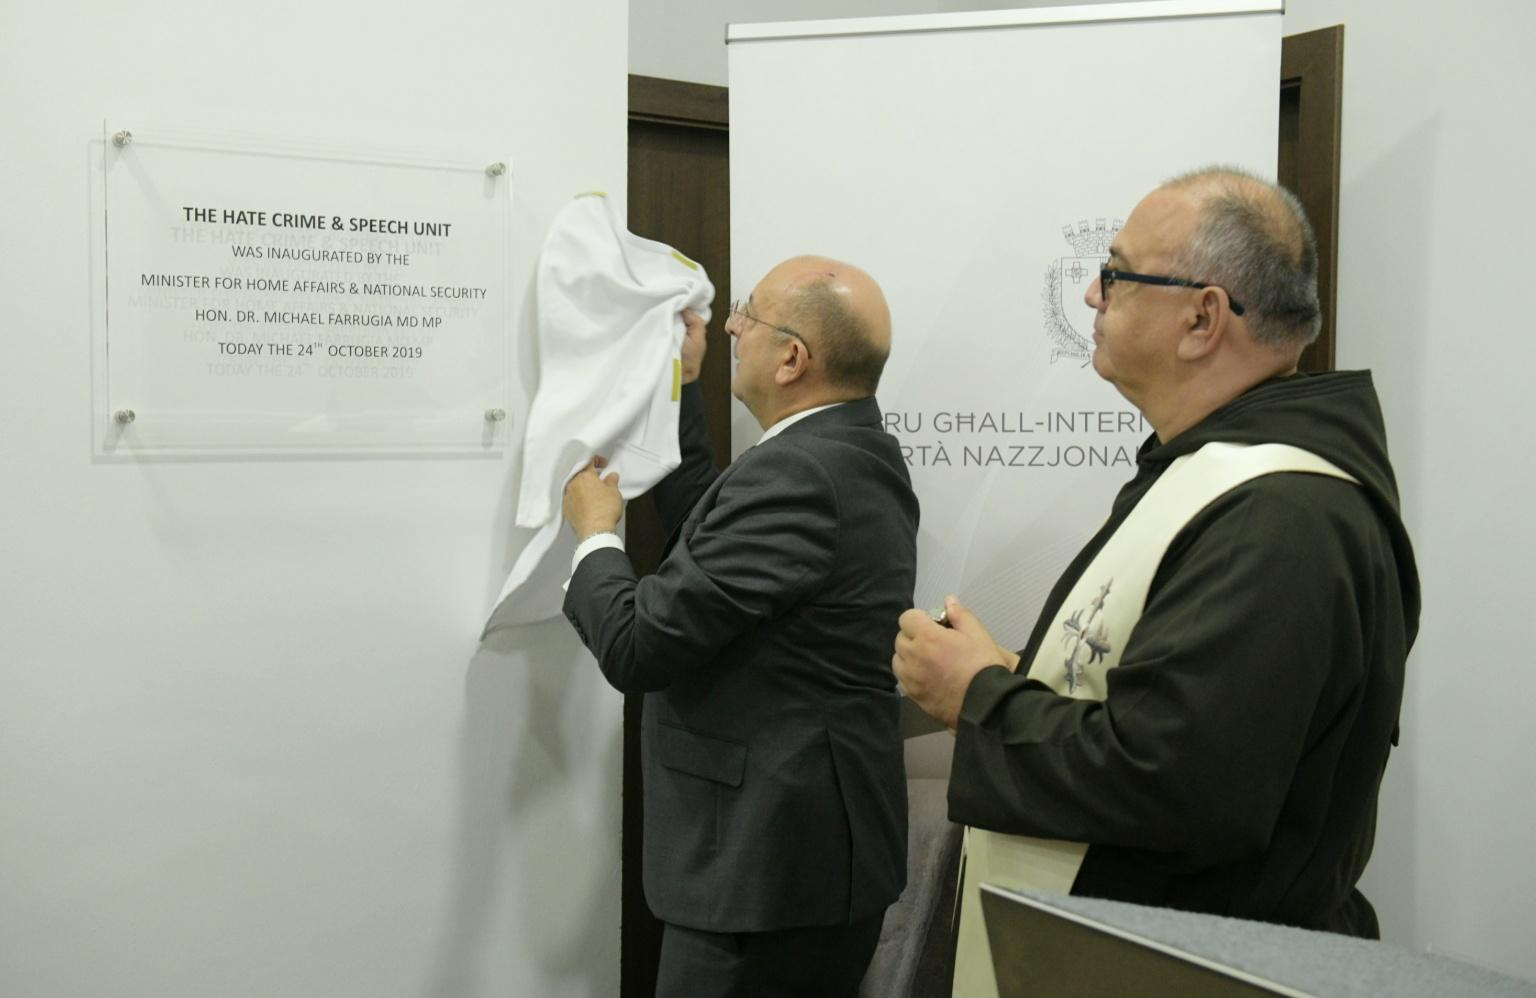 Minister Michael Farrugia inaugurating the Hate Crime and Speech Unit.